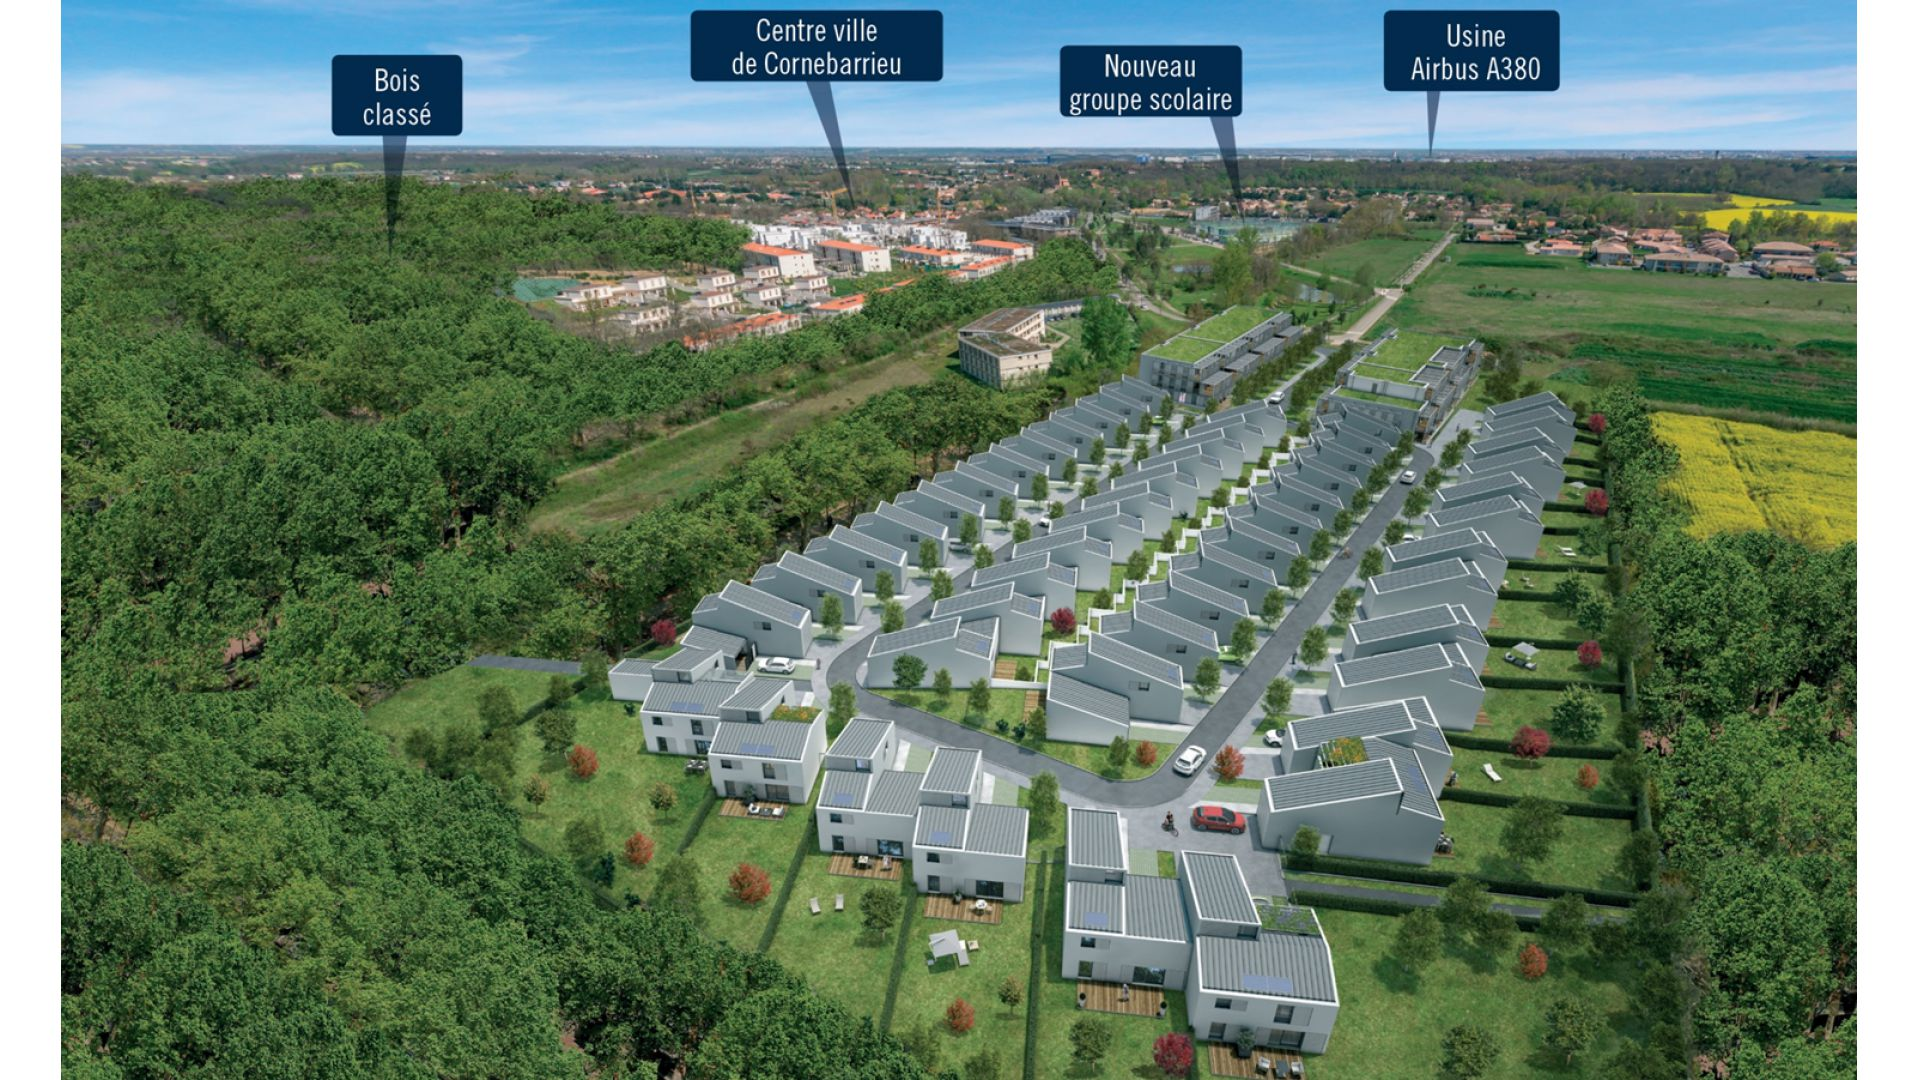 Greencity Immobilier - Cornebarrieu - Le Clos D'Agate - insertion paysagère